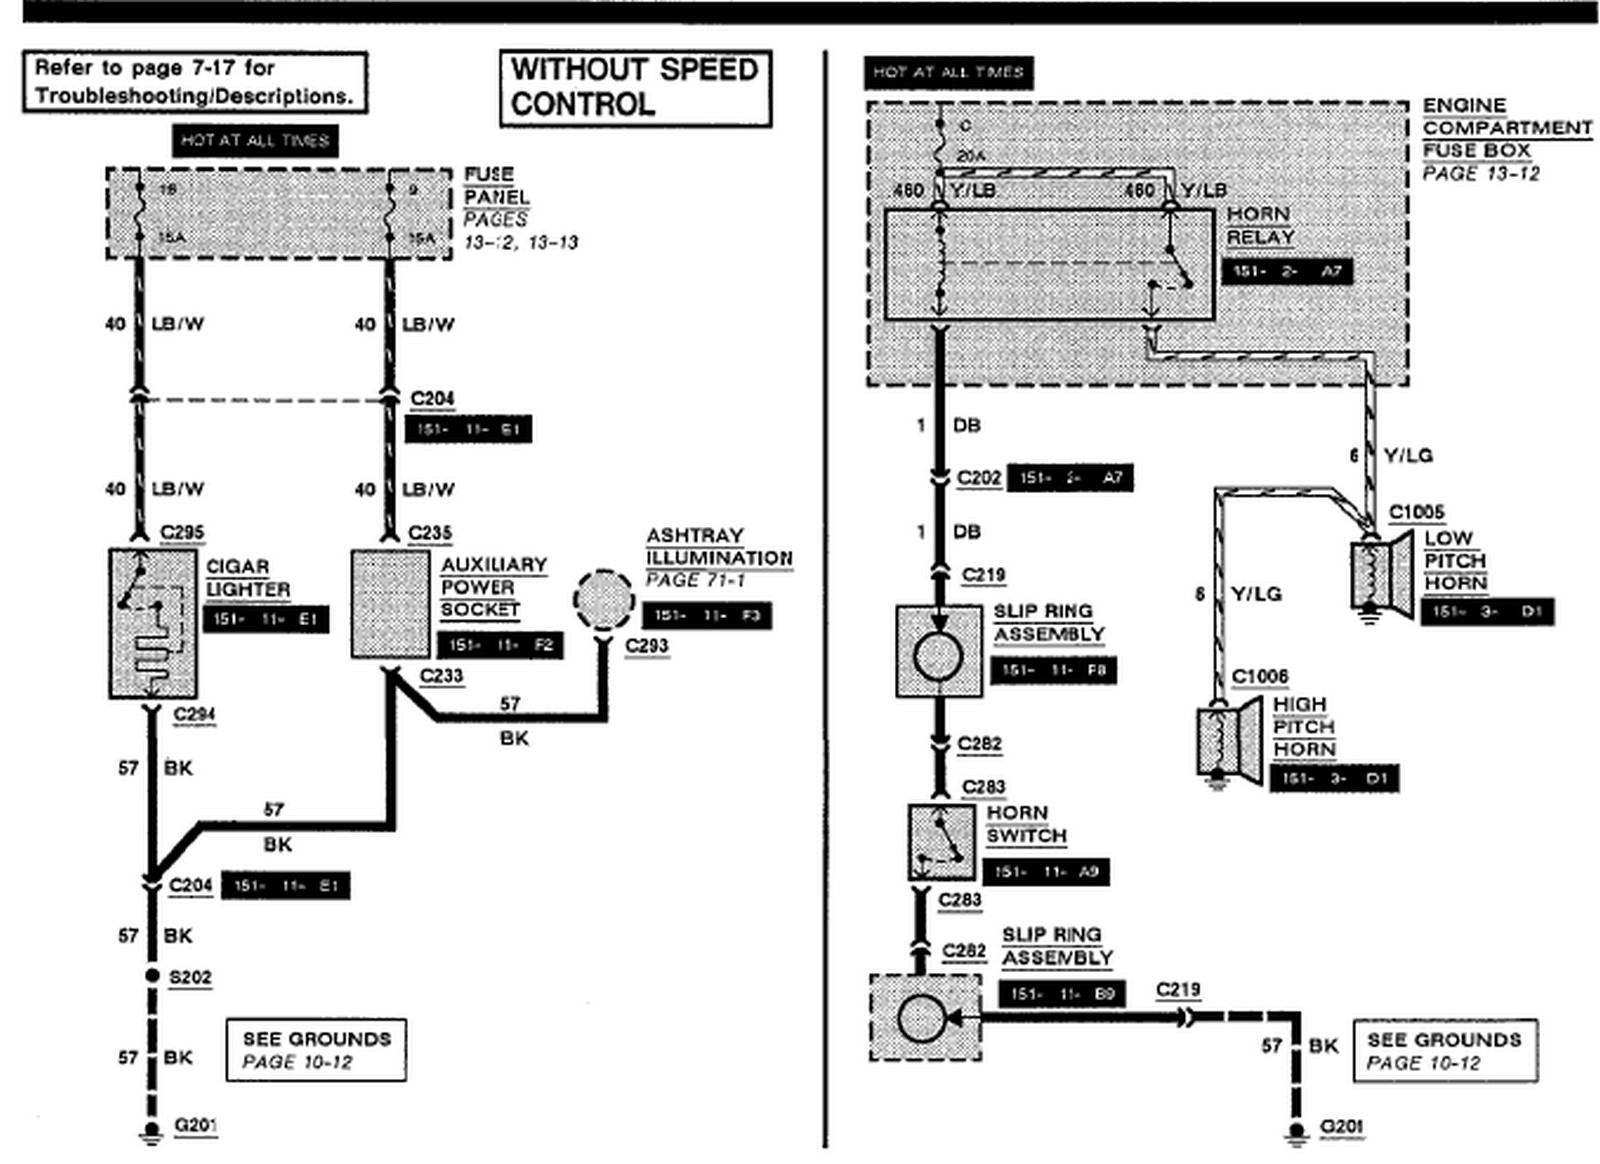 92 Ford Fiesta Engine Diagram | Wiring Diagram  Ford F Exploded Engine Diagram on 92 nissan maxima engine diagram, 1998 ford f-150 engine diagram, 92 honda civic engine diagram, 92 chevy s10 engine diagram, 92 jeep wrangler engine diagram, 92 subaru legacy engine diagram, 92 honda accord engine diagram, 92 nissan sentra engine diagram, 92 jeep cherokee engine diagram,